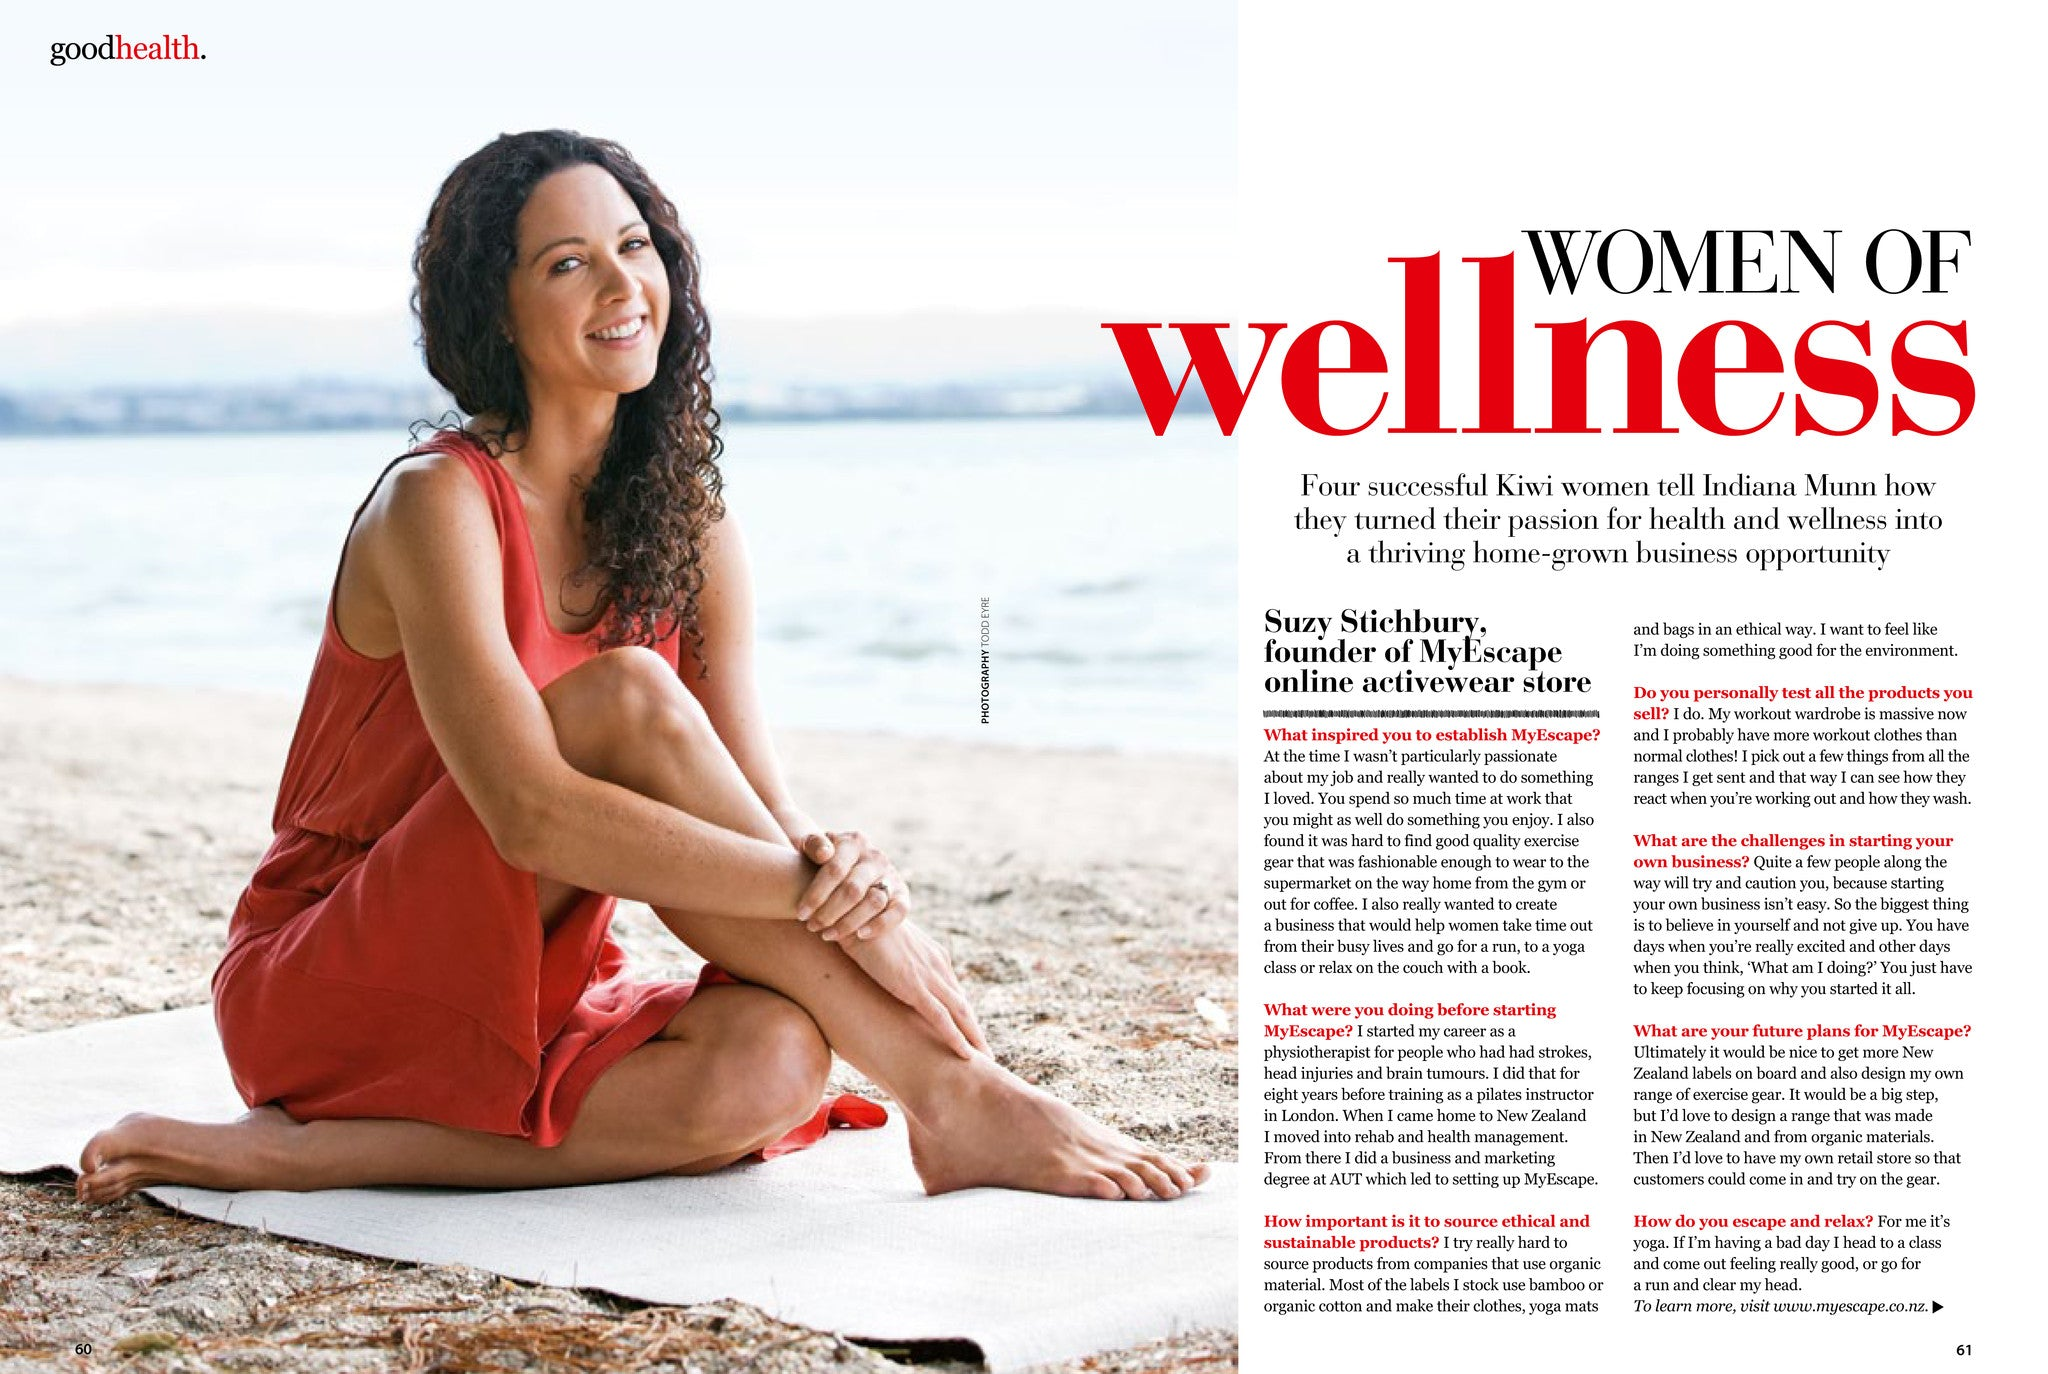 Women of Wellness Article in Good Health